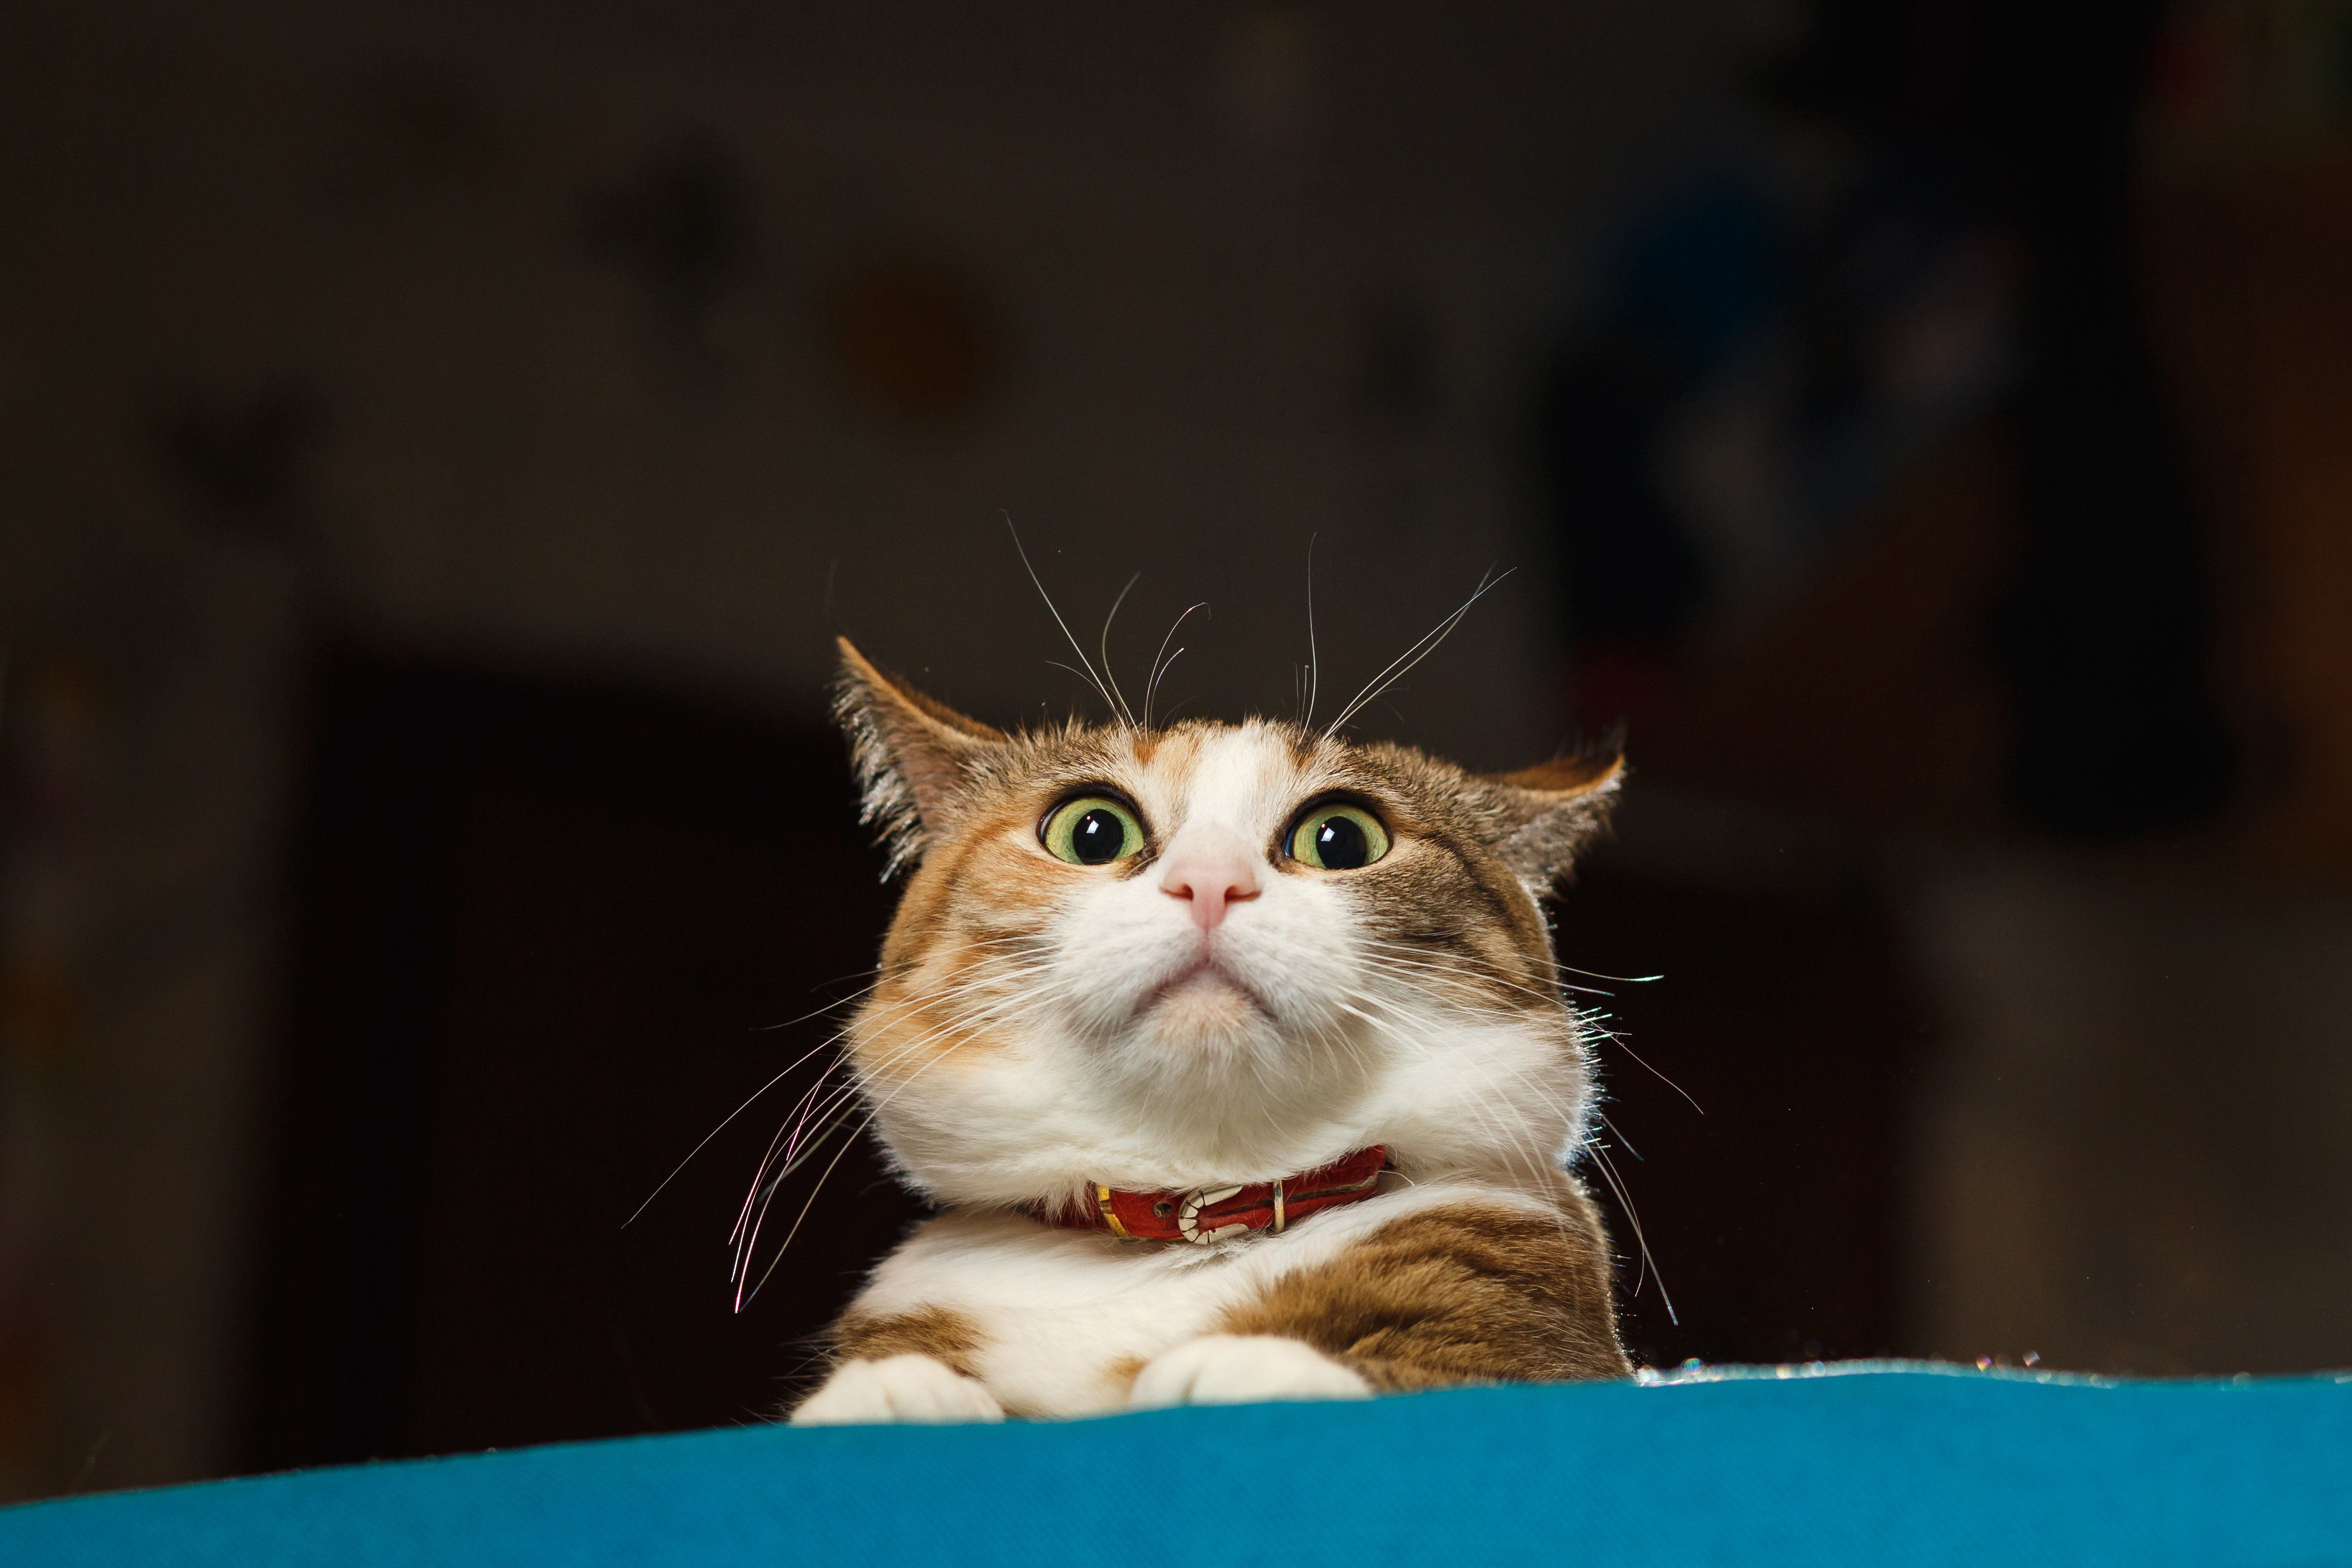 Cats Are The Weirdest, As Proven In Five